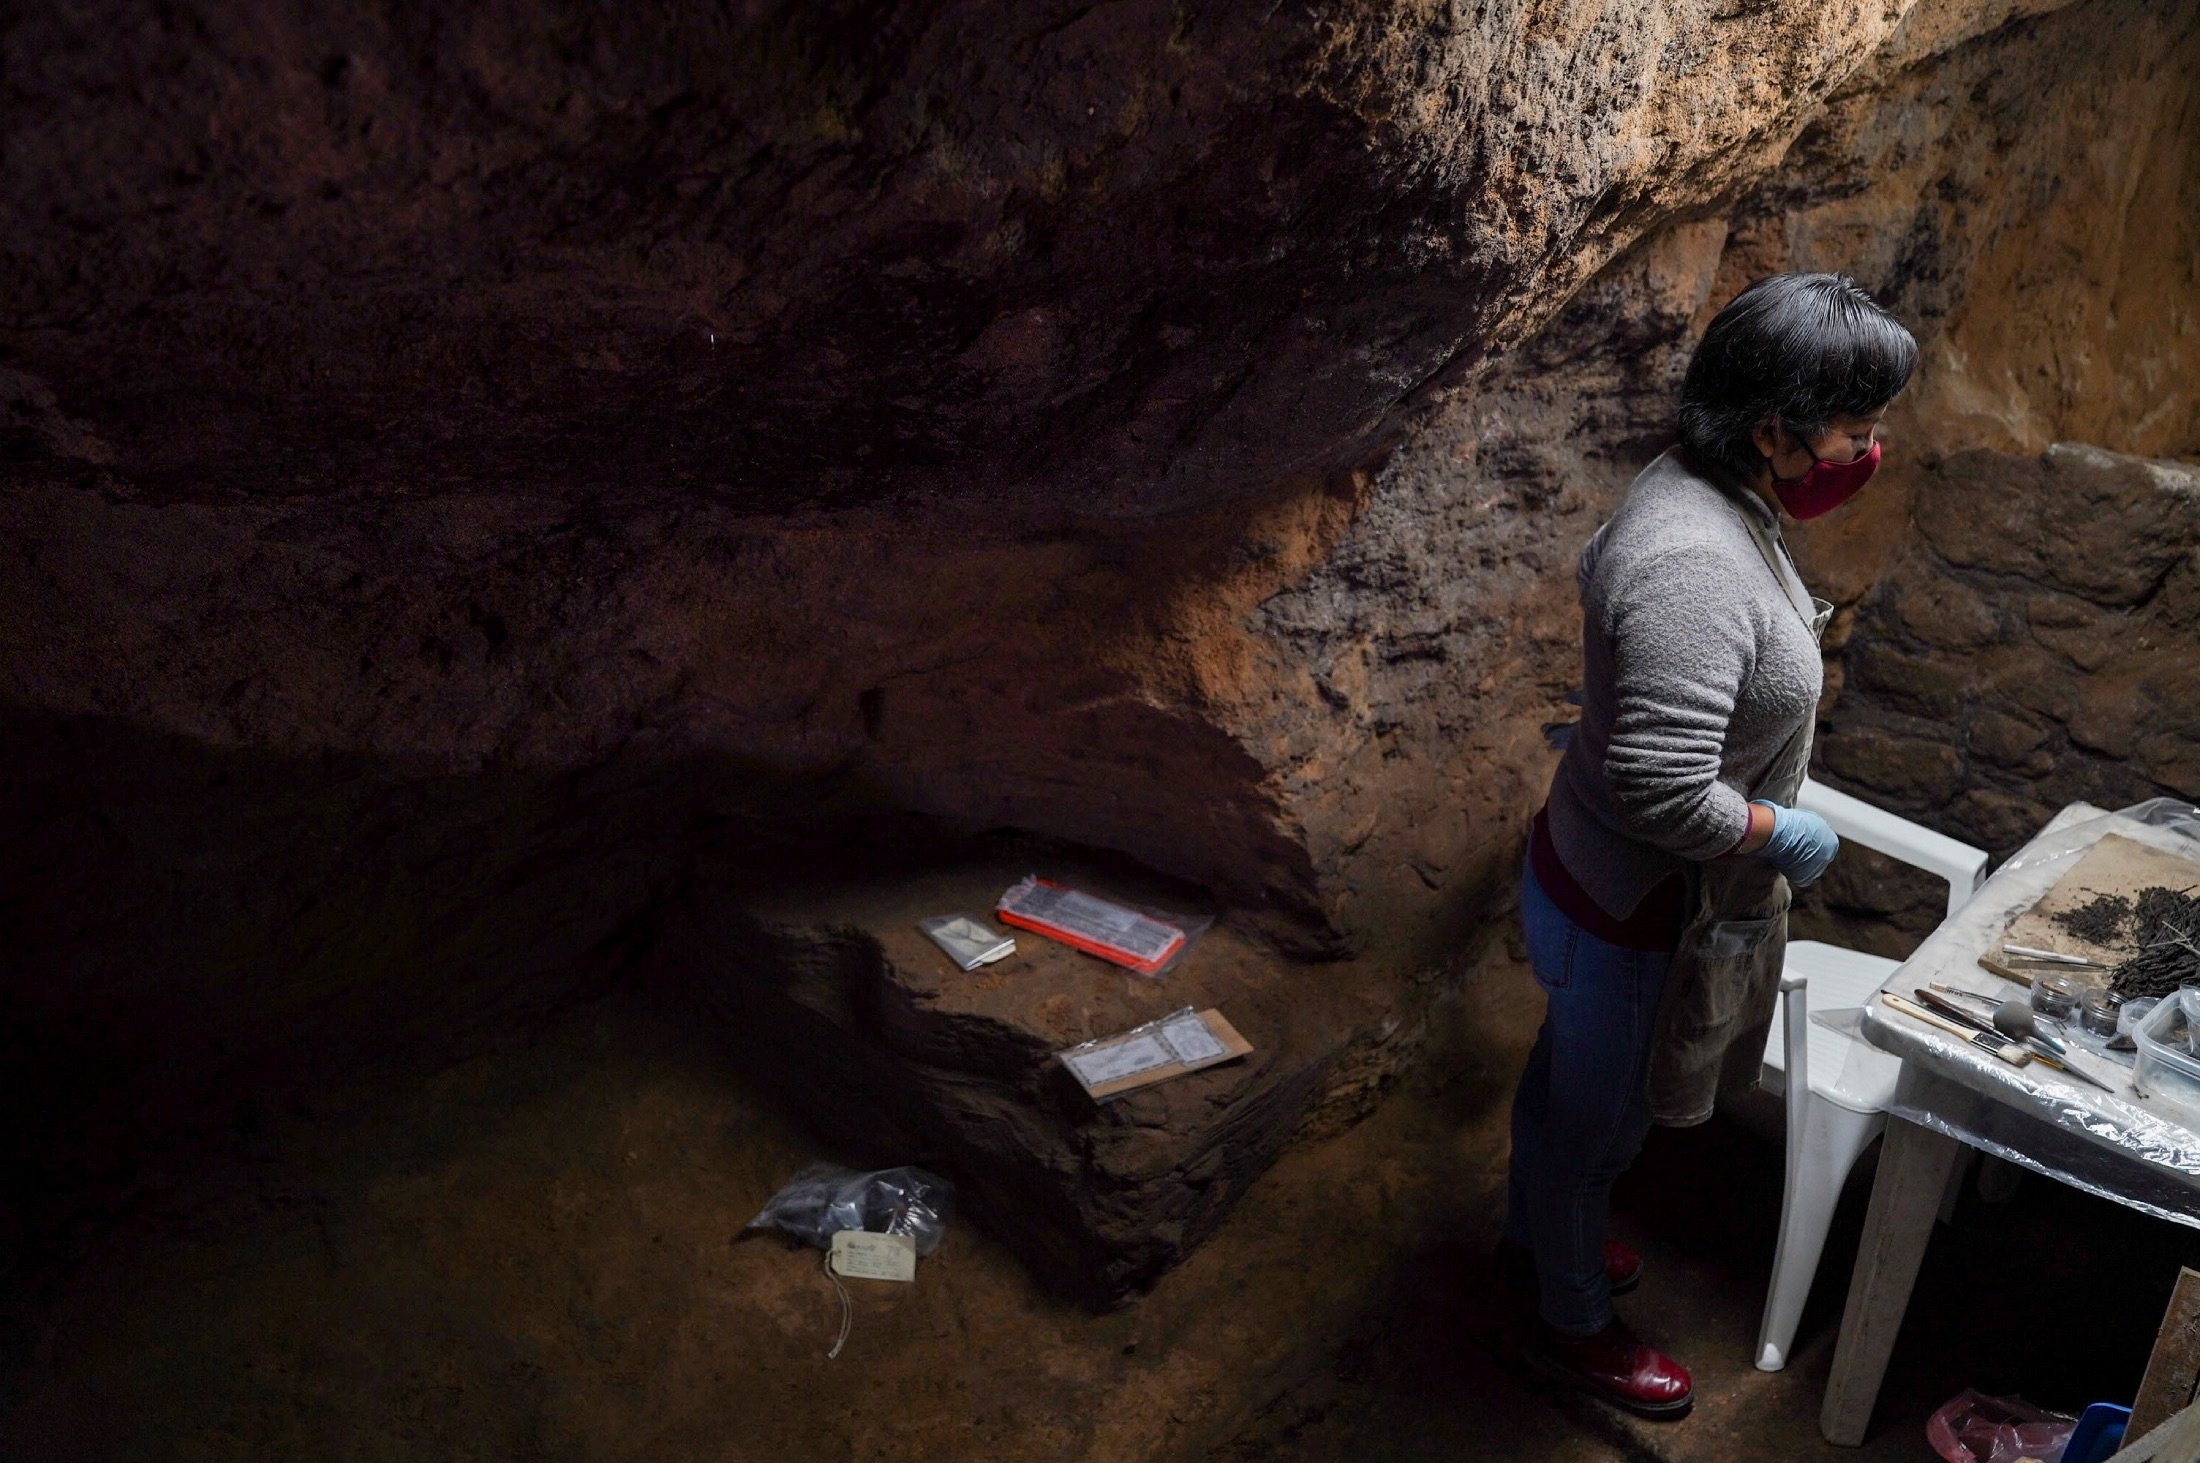 Sonia Disciplina examines a bouquet of 'well-preserved old flowers' inside inside a 2,000-year-old tunnel built under the ornate Feathered Serpent Pyramid, in the ruins of Teotihuacan, in San Juan Teotihuacan, Mexico, Aug. 12, 2021. (Reuters Photo)